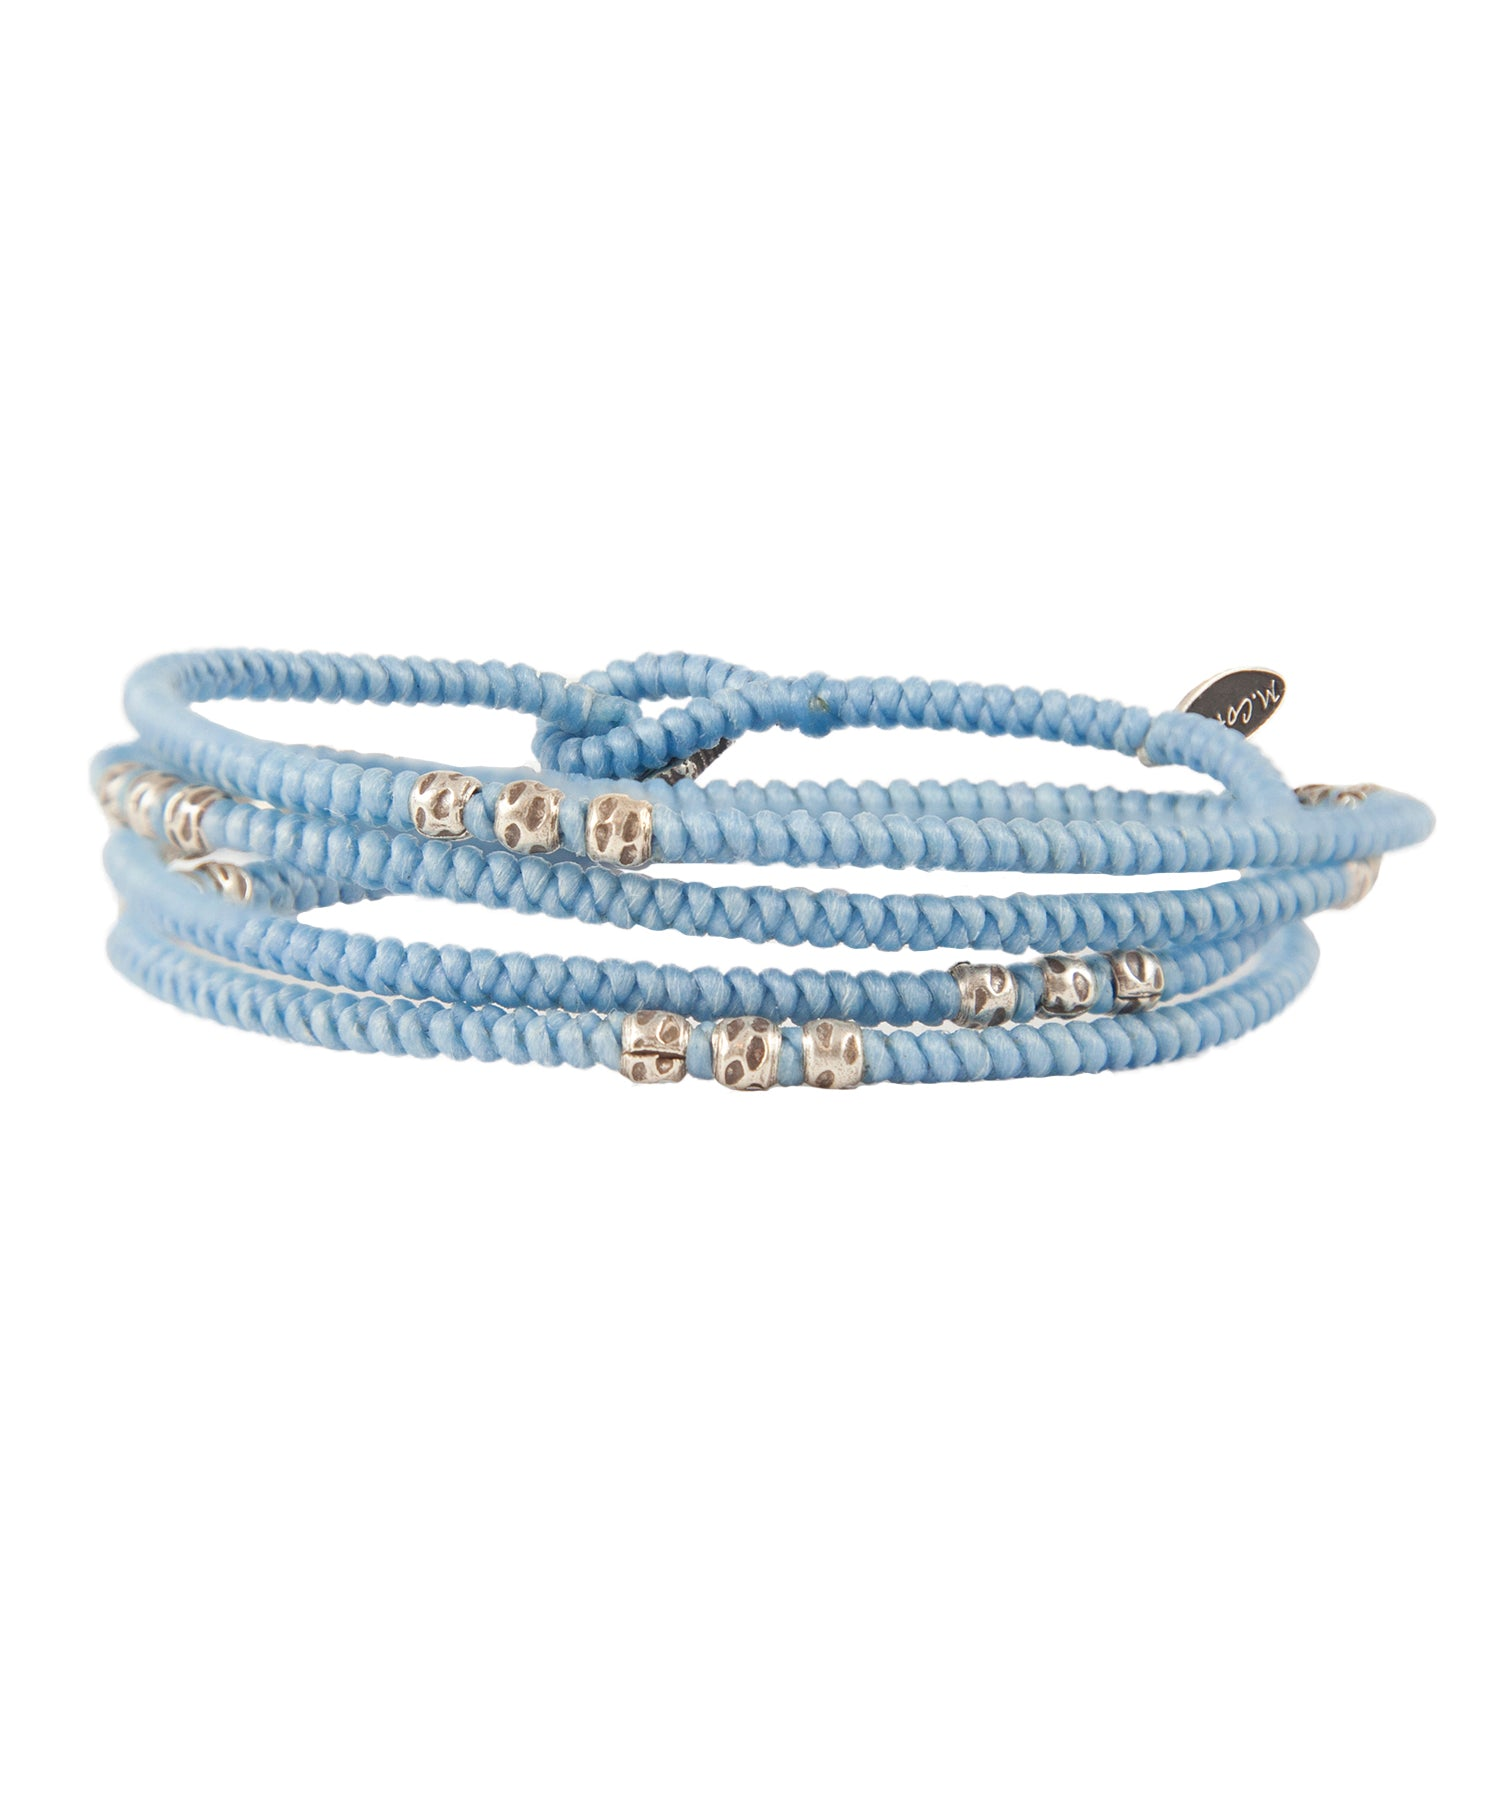 M. Cohen 4-Layer Knotted Wrap Silver Brad Brace in Light Blue